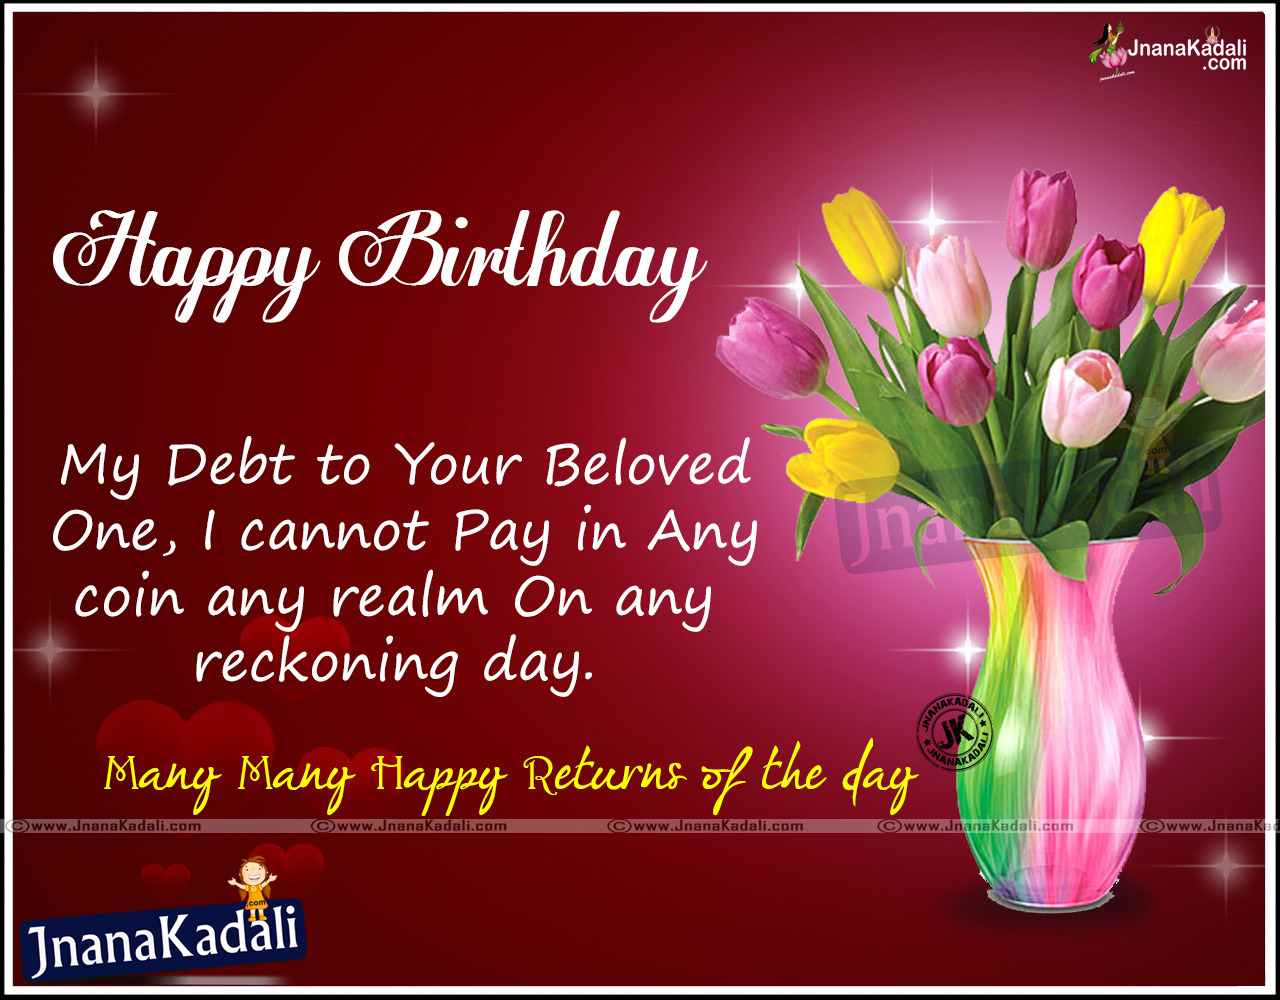 happy birthday english message ; friend-greeting-card-messages-new-birthday-wishes-in-english-quotes-inspirational-hindi-shayeri-of-friend-greeting-card-messages